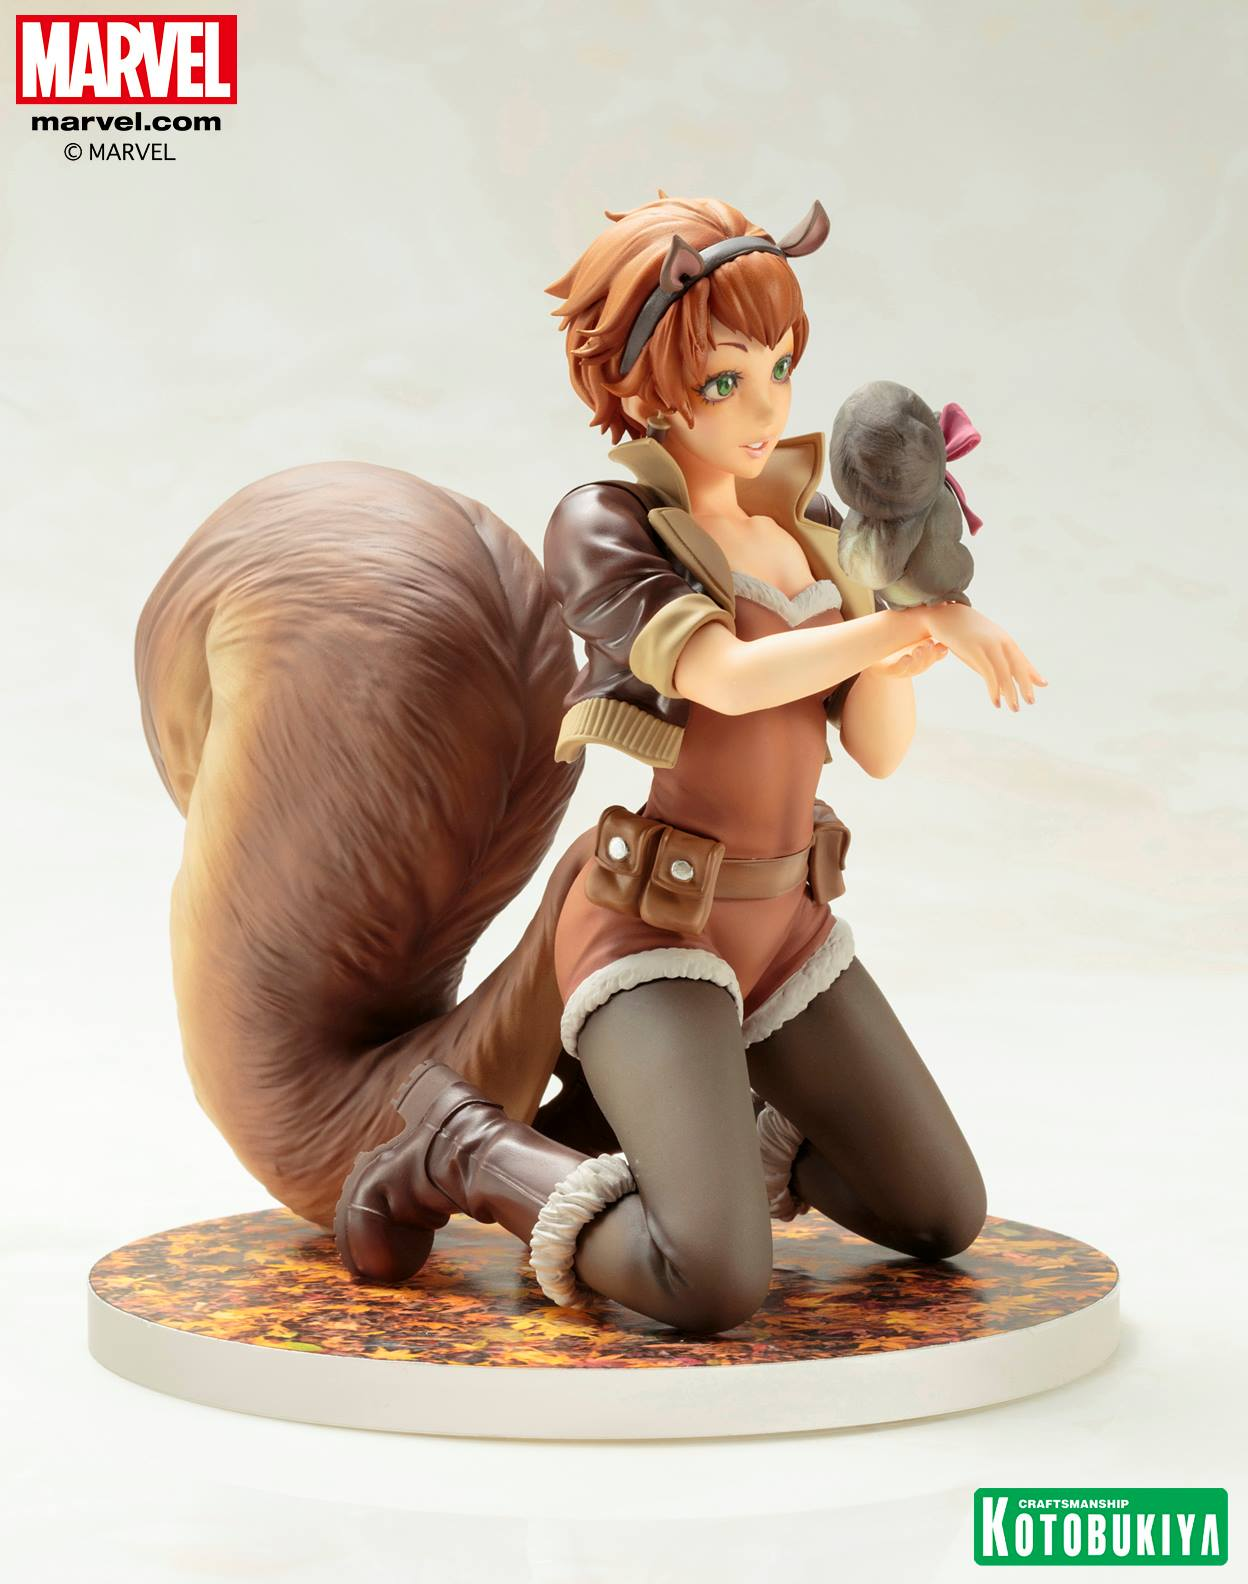 squirrel-girl-bishoujo-statue-marvel-kotobukiya-3